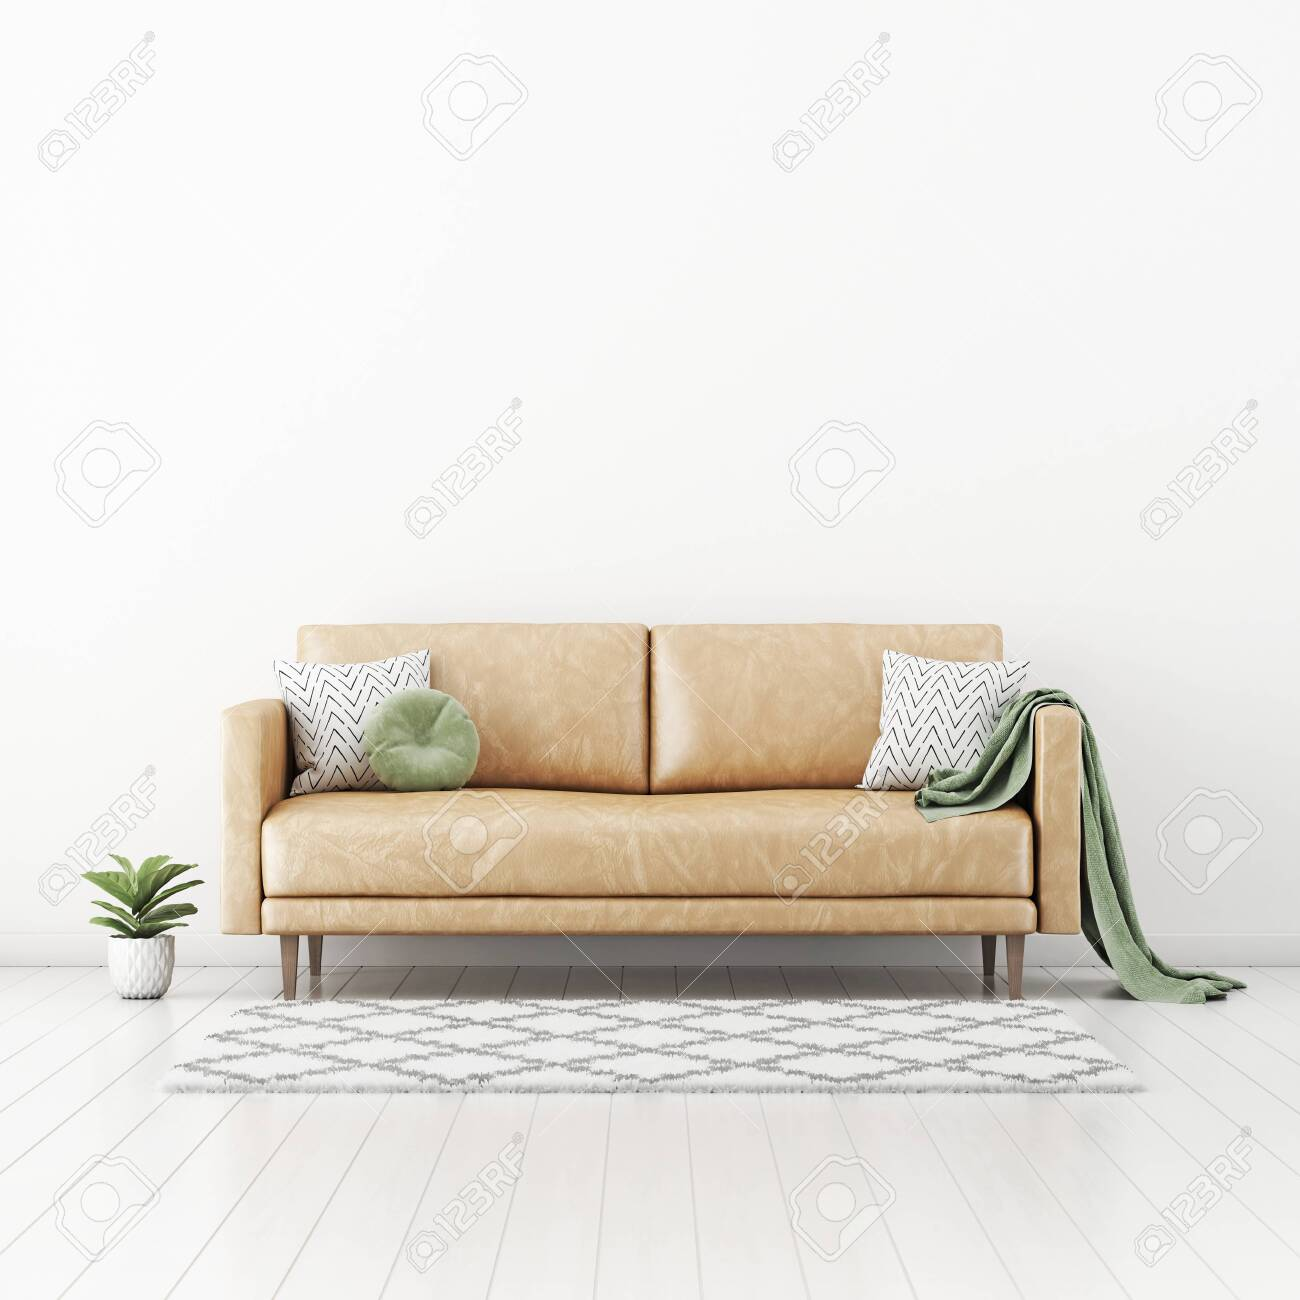 living room interior wall mockup with tan brown leather sofa round green pillow and plaid plant in pot and rug on empty white wall background 3d